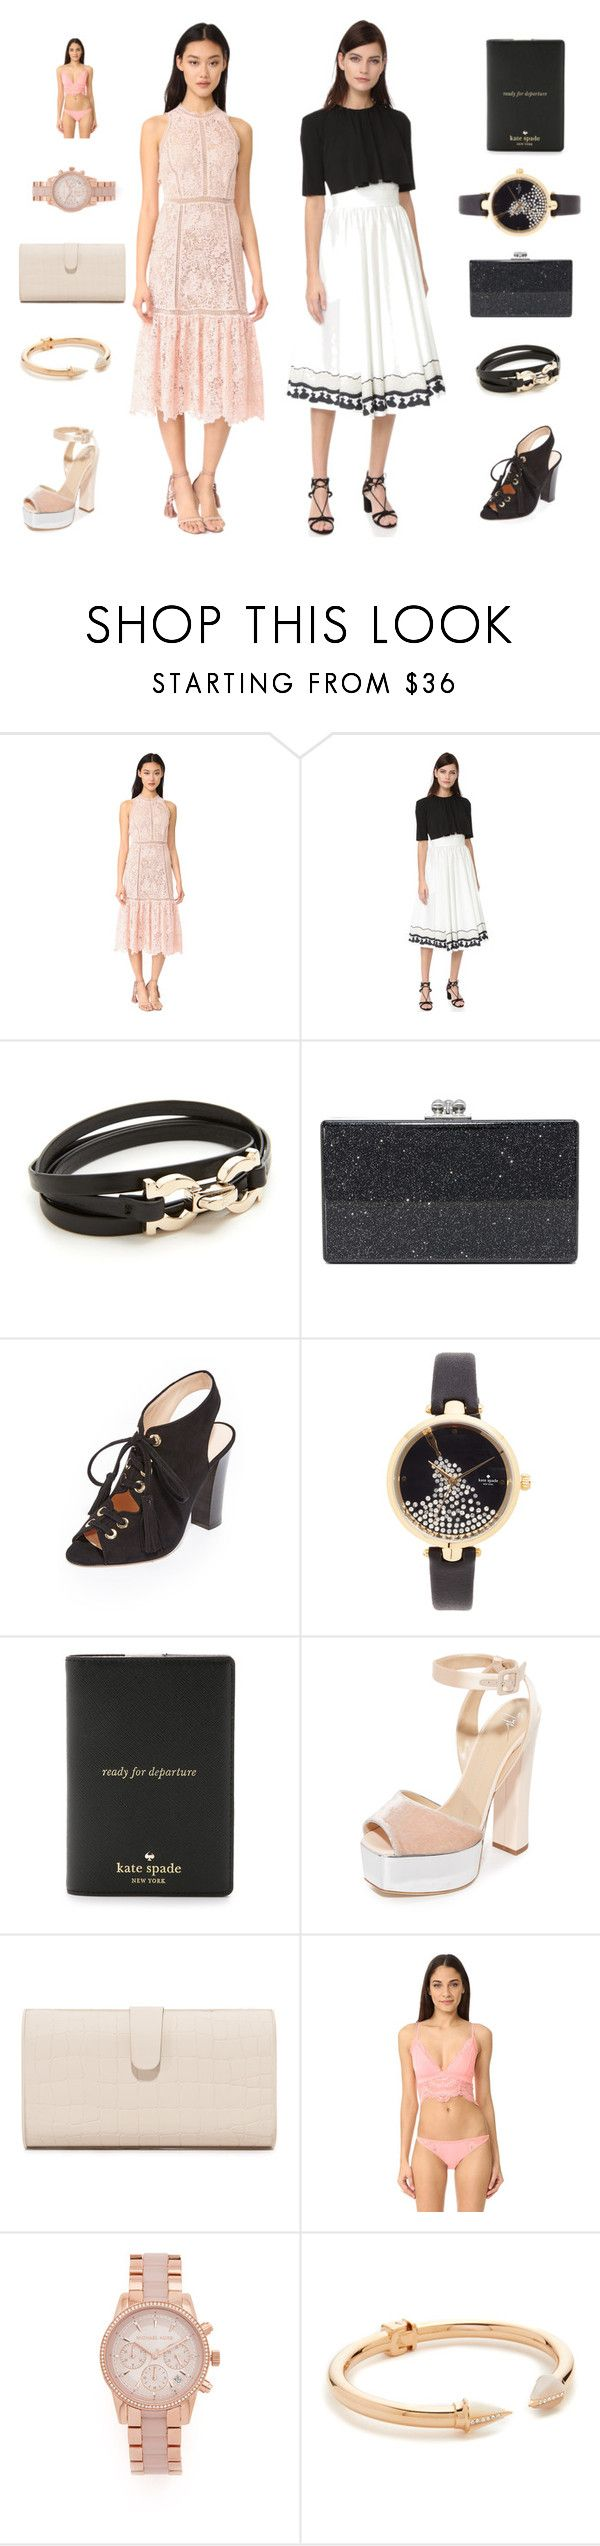 """""""Two types of fashion sale"""" by camry-brynn ❤ liked on Polyvore featuring Rebecca Taylor, Rossella Jardini, Salvatore Ferragamo, Edie Parker, Club Monaco, Kate Spade, Giuseppe Zanotti, Honeydew Intimates, Michael Kors and Vita Fede"""